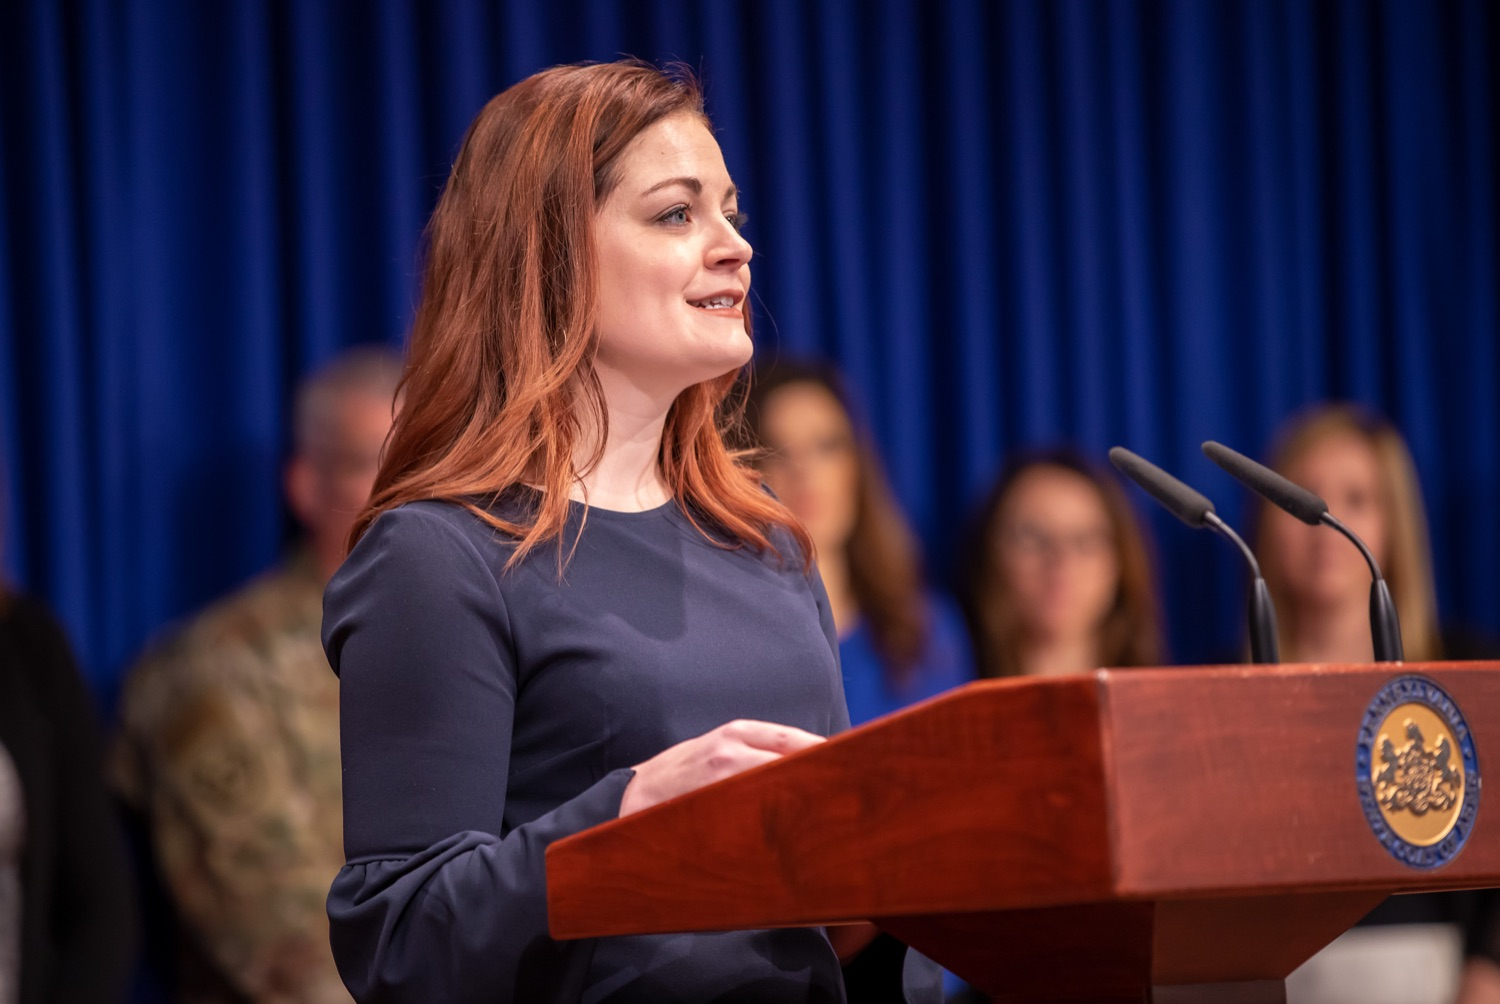 """<a href=""""http://filesource.abacast.com/commonwealthofpa/photo/17711_DHS_SuicidePrevention_AG_14.jpg"""" target=""""_blank"""">⇣Download Photo<br></a>Harrisburg, PA.  Caitlin Palmer of the Department of Human Services, speaks at todays event discussing the initial report of Pennsylvanias Suicide Prevention Task Force based on the statewide listening sessions held throughout fall 2019. The work of the Suicide Prevention Task Force is a complement to the goals and strategies surrounding the governors Reach Out PA: Your Mental Health Matters initiative announced earlier this month and his Executive Order to protect vulnerable populations signed last year.  January 14, 2020."""